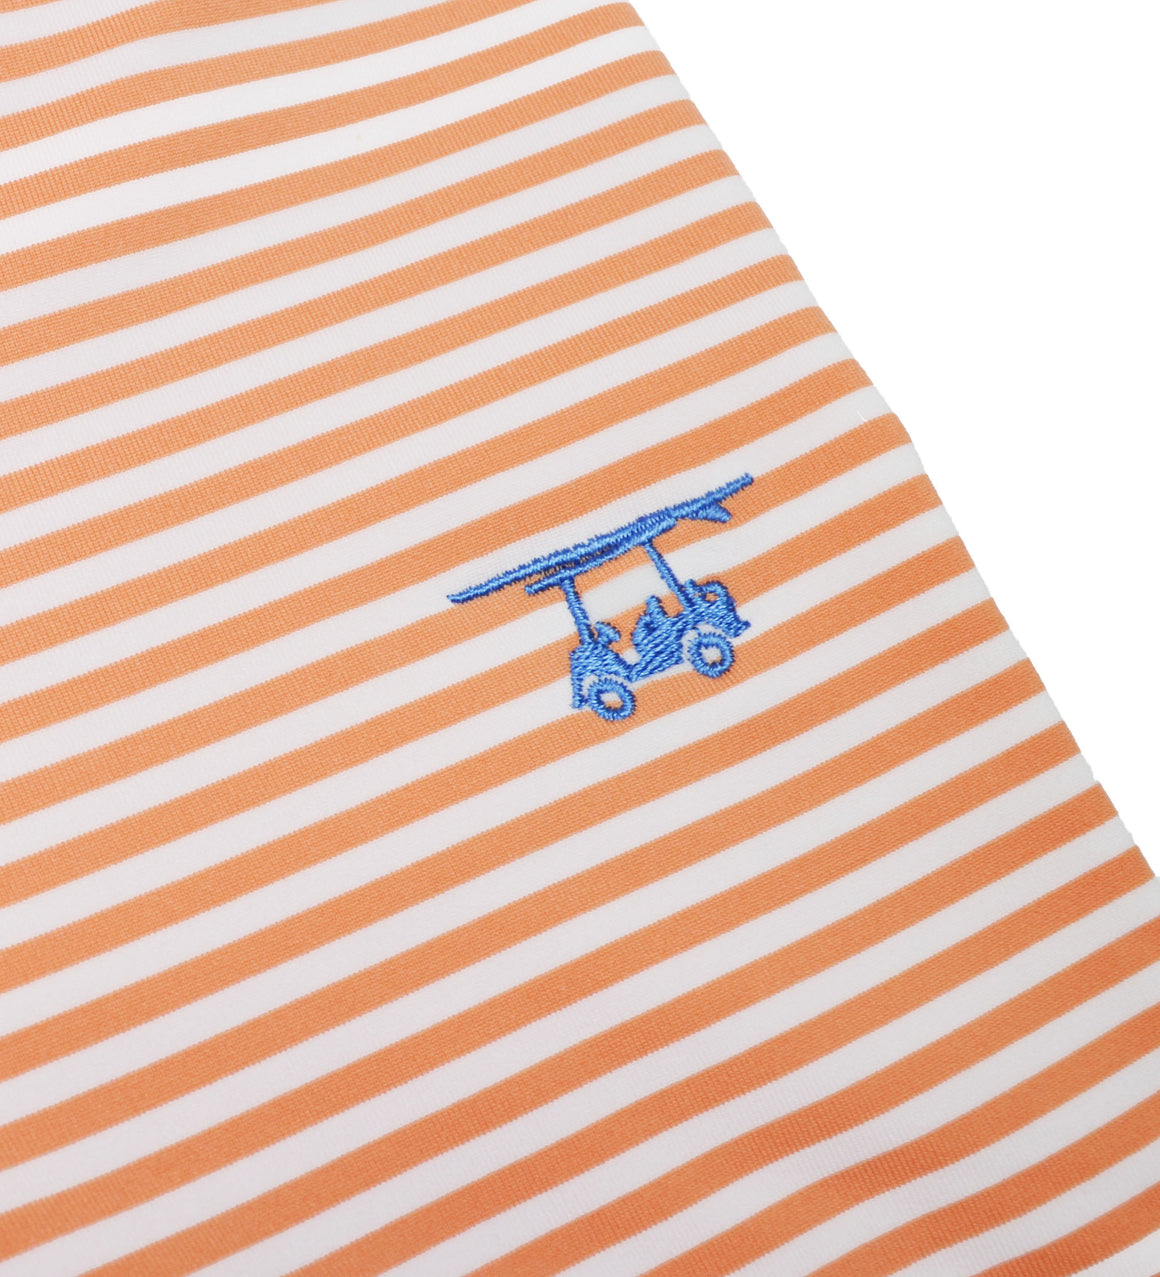 NEW Albatross Polo - Cantalope/White